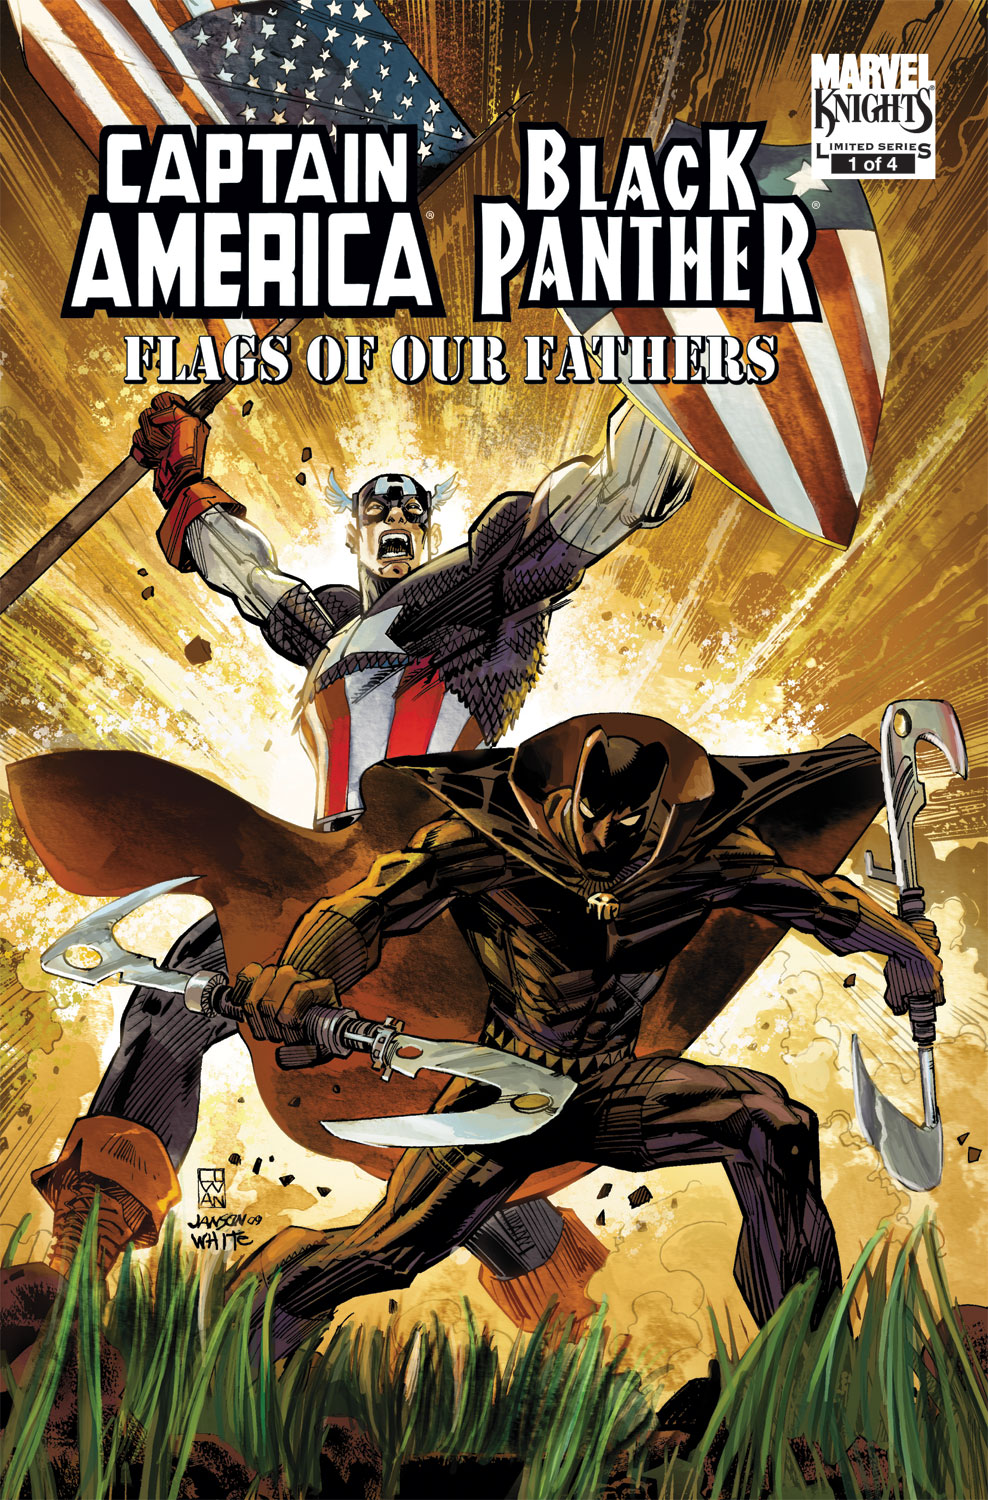 Captain America/Black Panther: Flags of Our Fathers (2010) #1